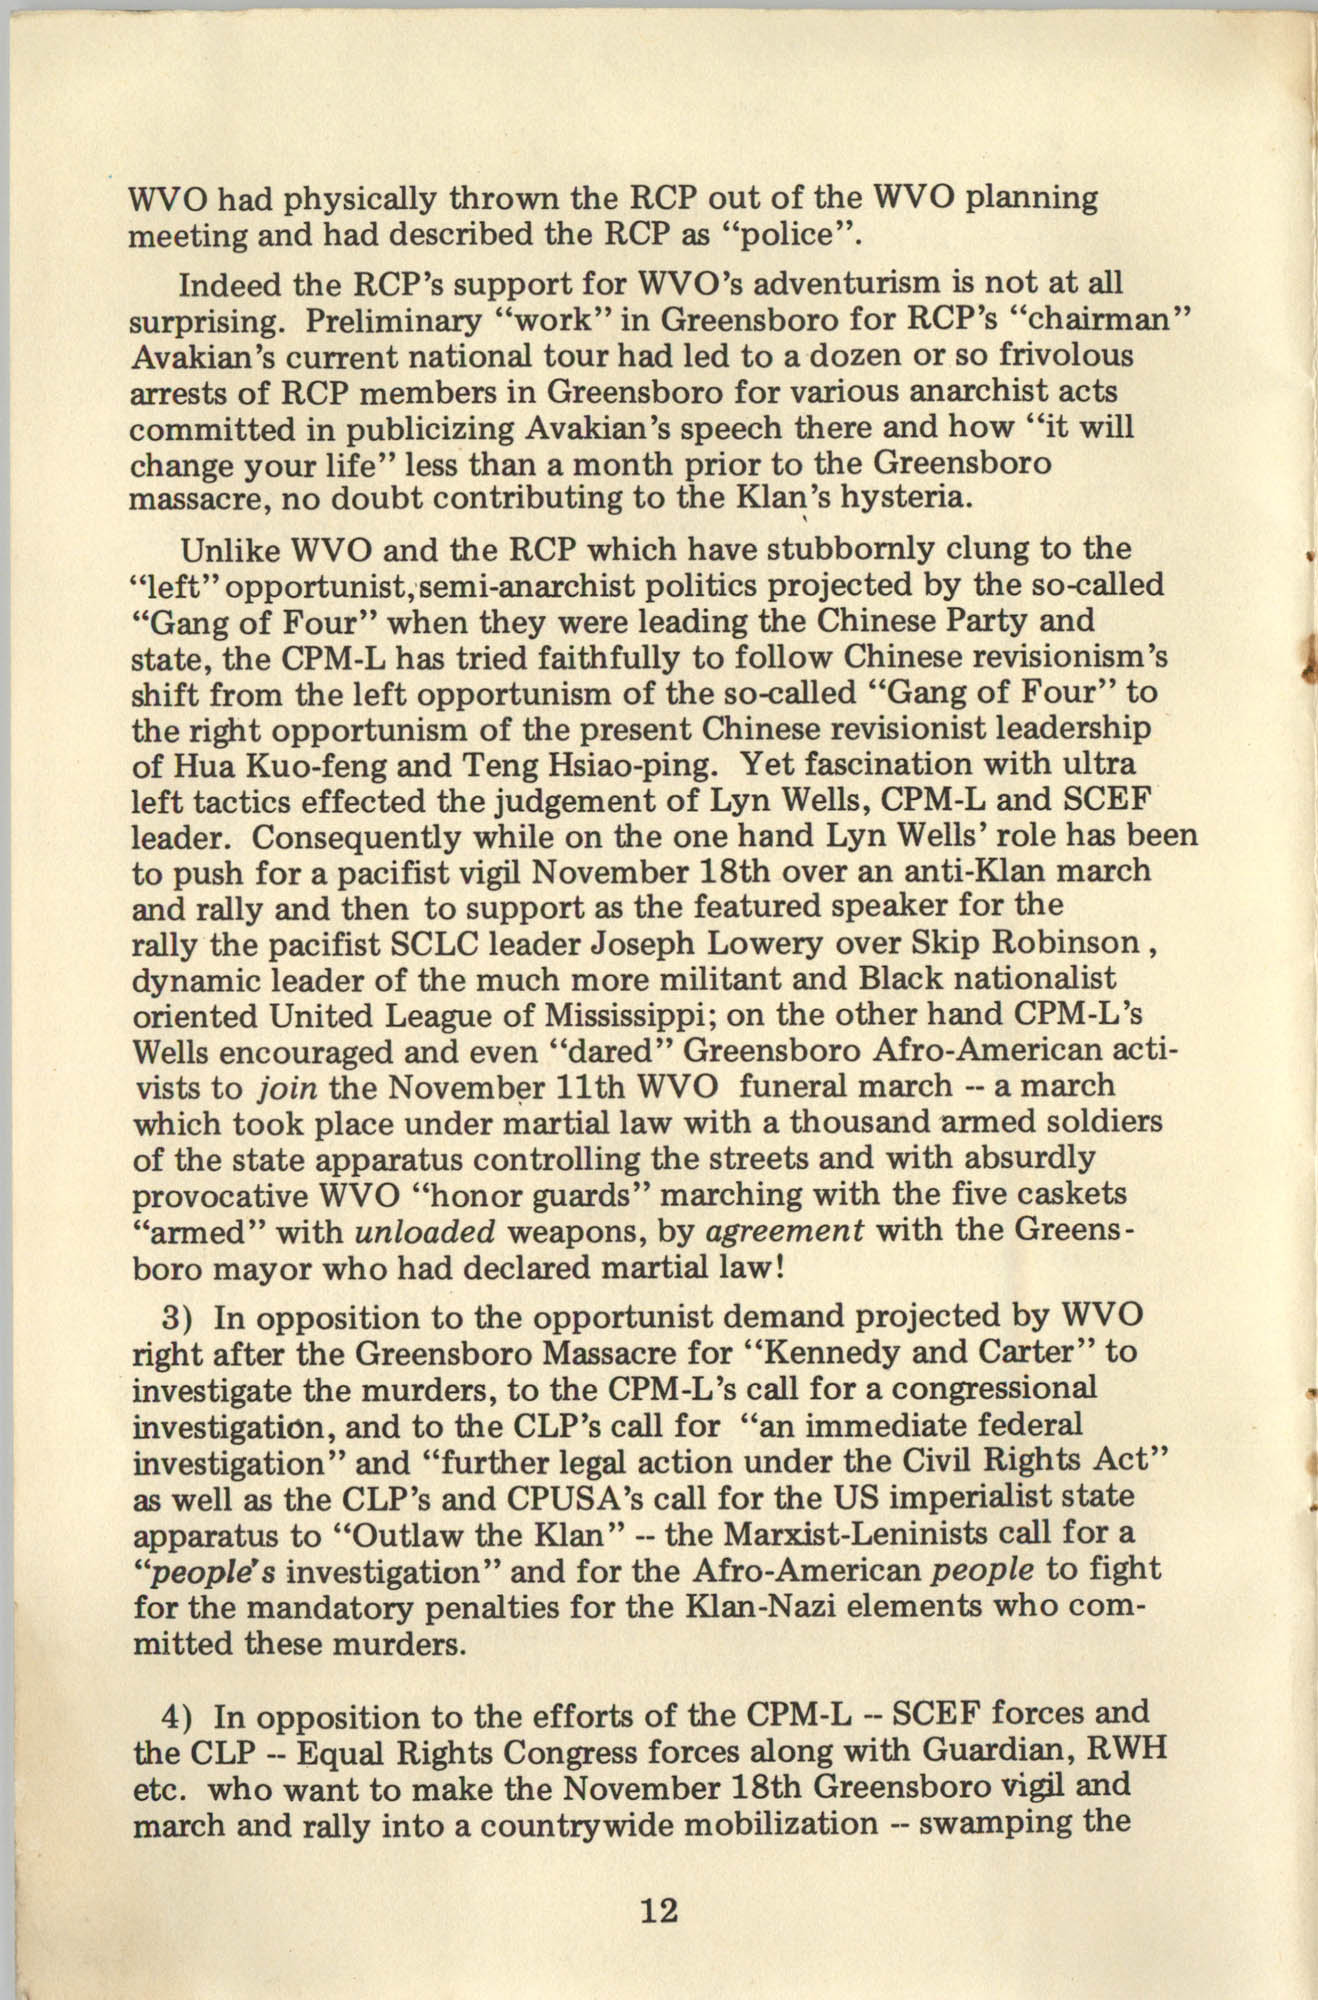 Ray O. Light Newsletter, Volume 1, Number 4, Page 12